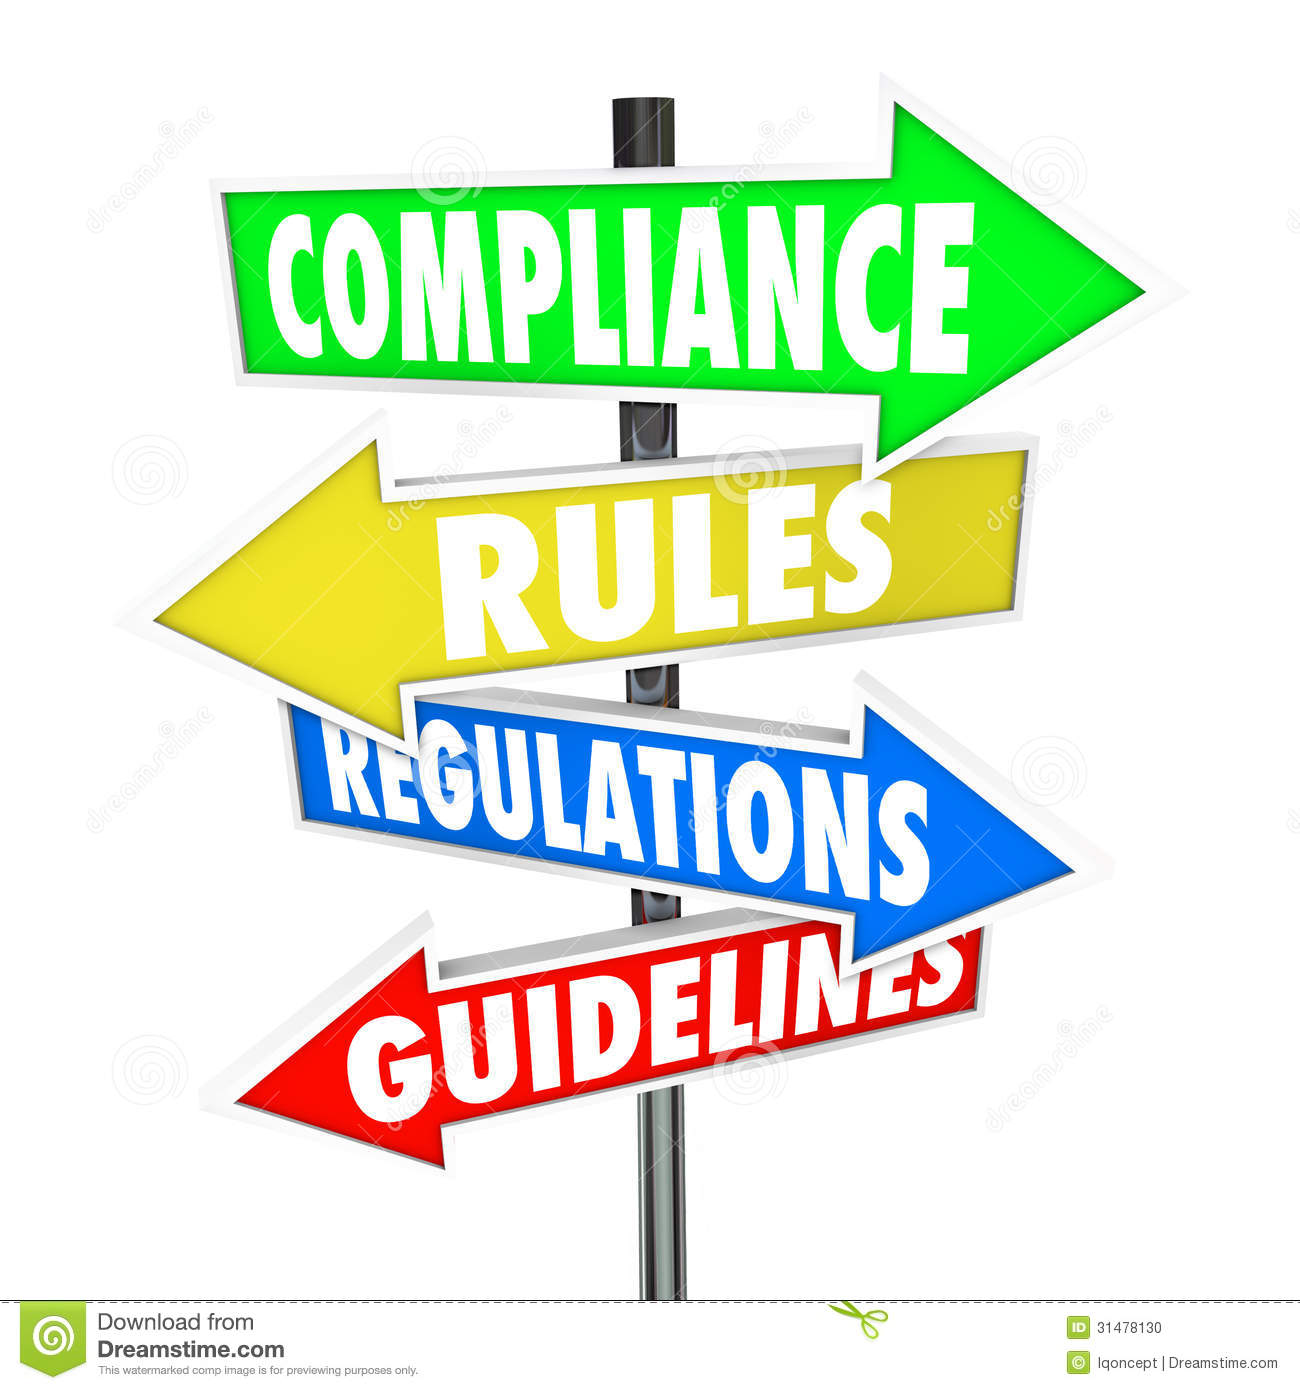 the importance fo following military rules and regulations Rules and regulations must be consistent with the npa and cannot go beyond it these rules and regulations undergo a process of public review before enactment once enacted, rules and regulations have the full force and effect of law.